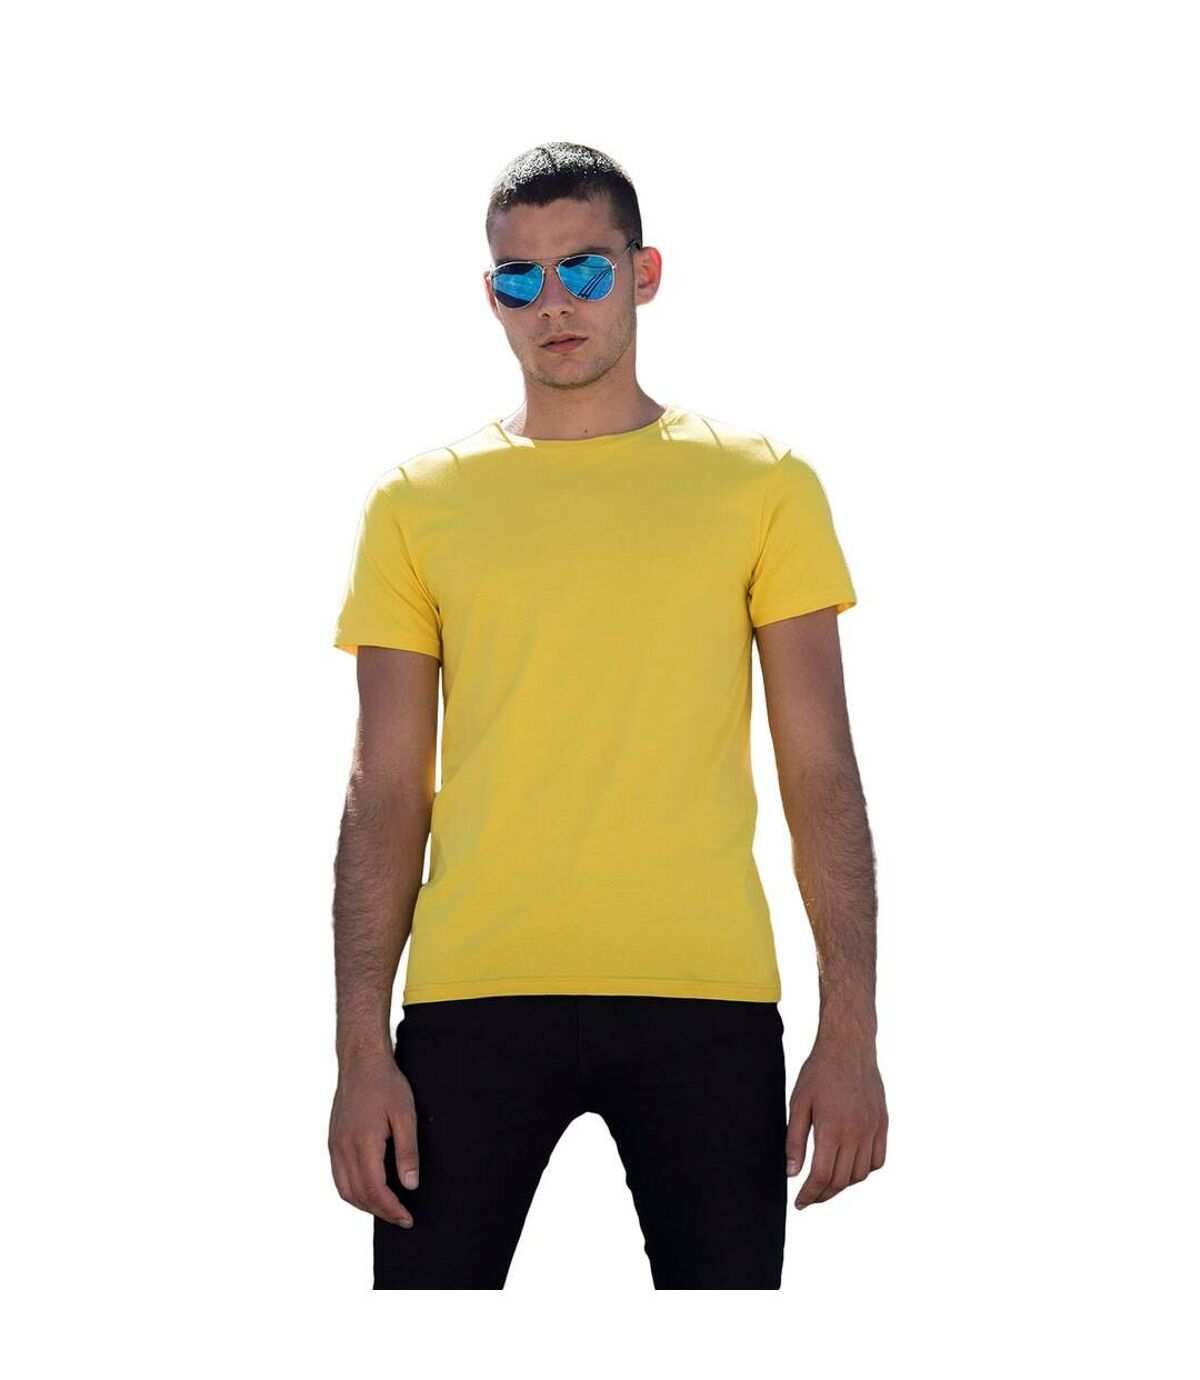 Skinni Fit - T-shirt manches courtes FEEL GOOD - Homme (Jaune) - UTRW4427